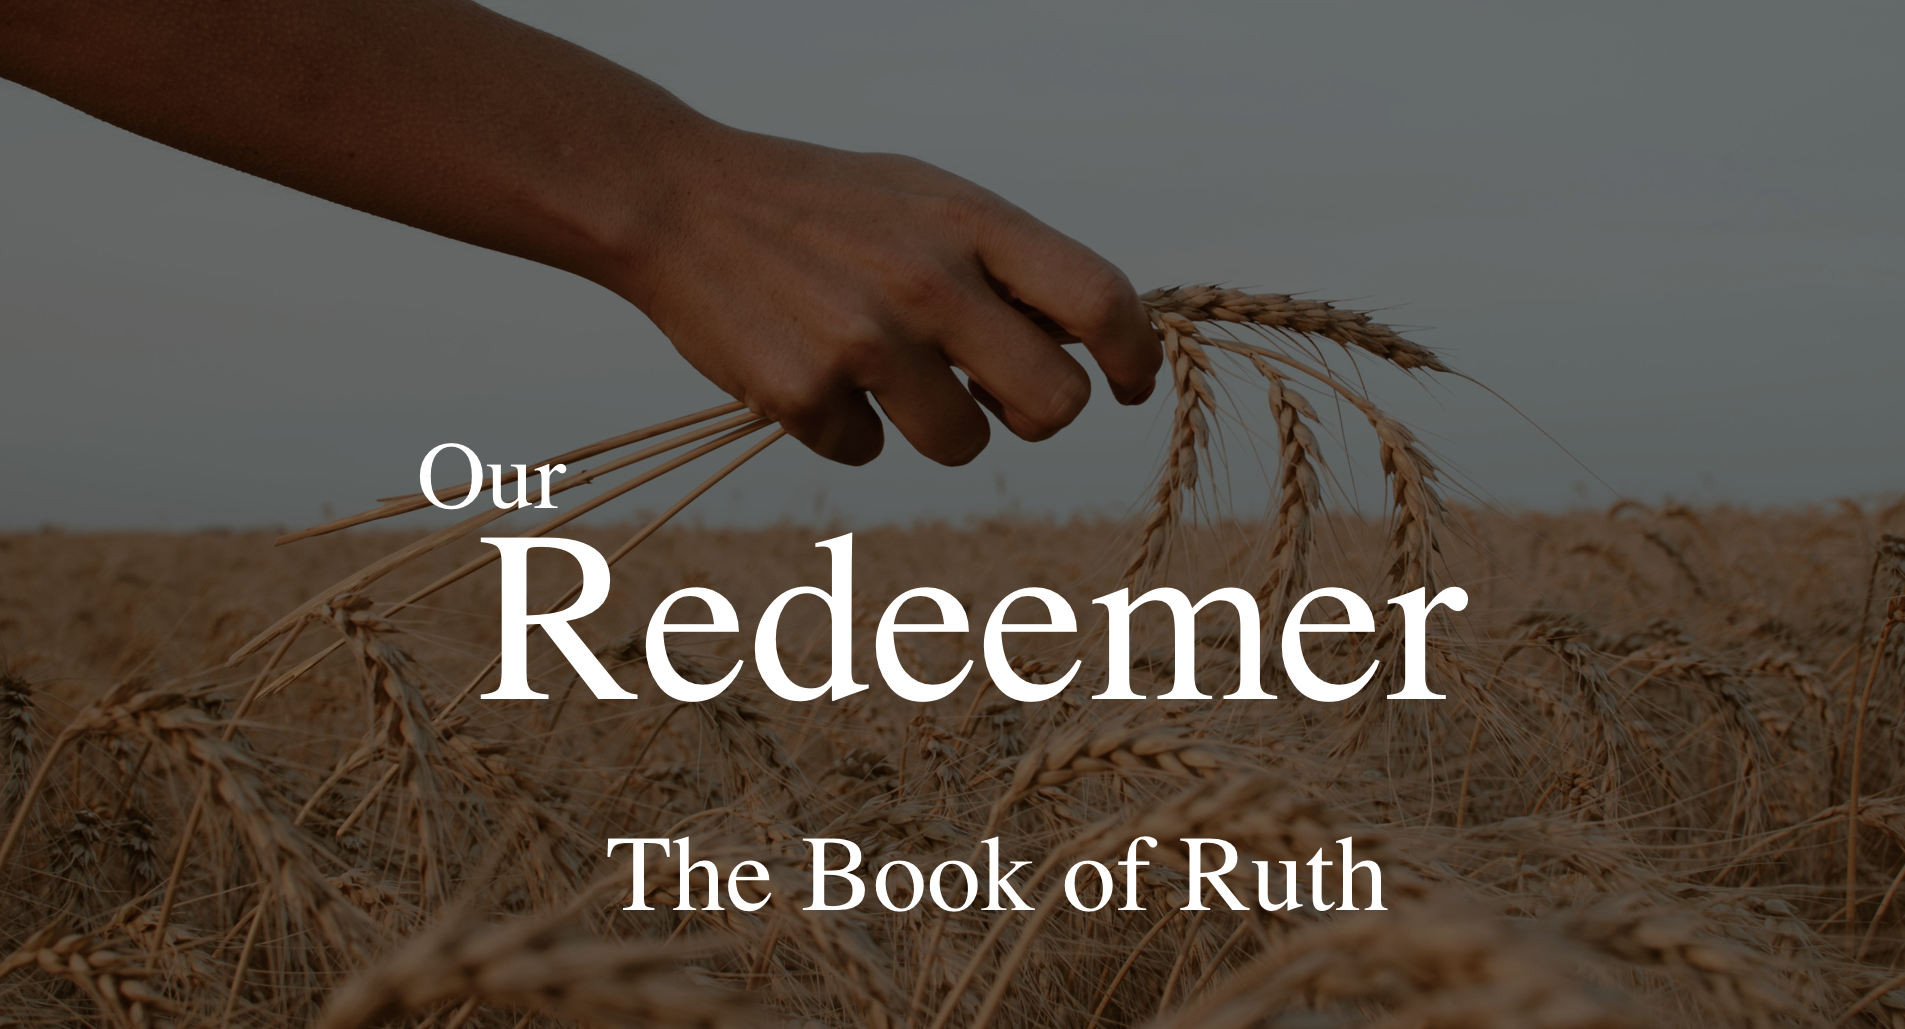 How does Ruth relate to the Gospel story as a whole? Listen to Pastor Will's sermon today, as we finished our final text in the Book of Ruth. To end this sermon series, we saw how Ruth relates to the Bible as a whole, and how our story relates to the larger story of redemption! -